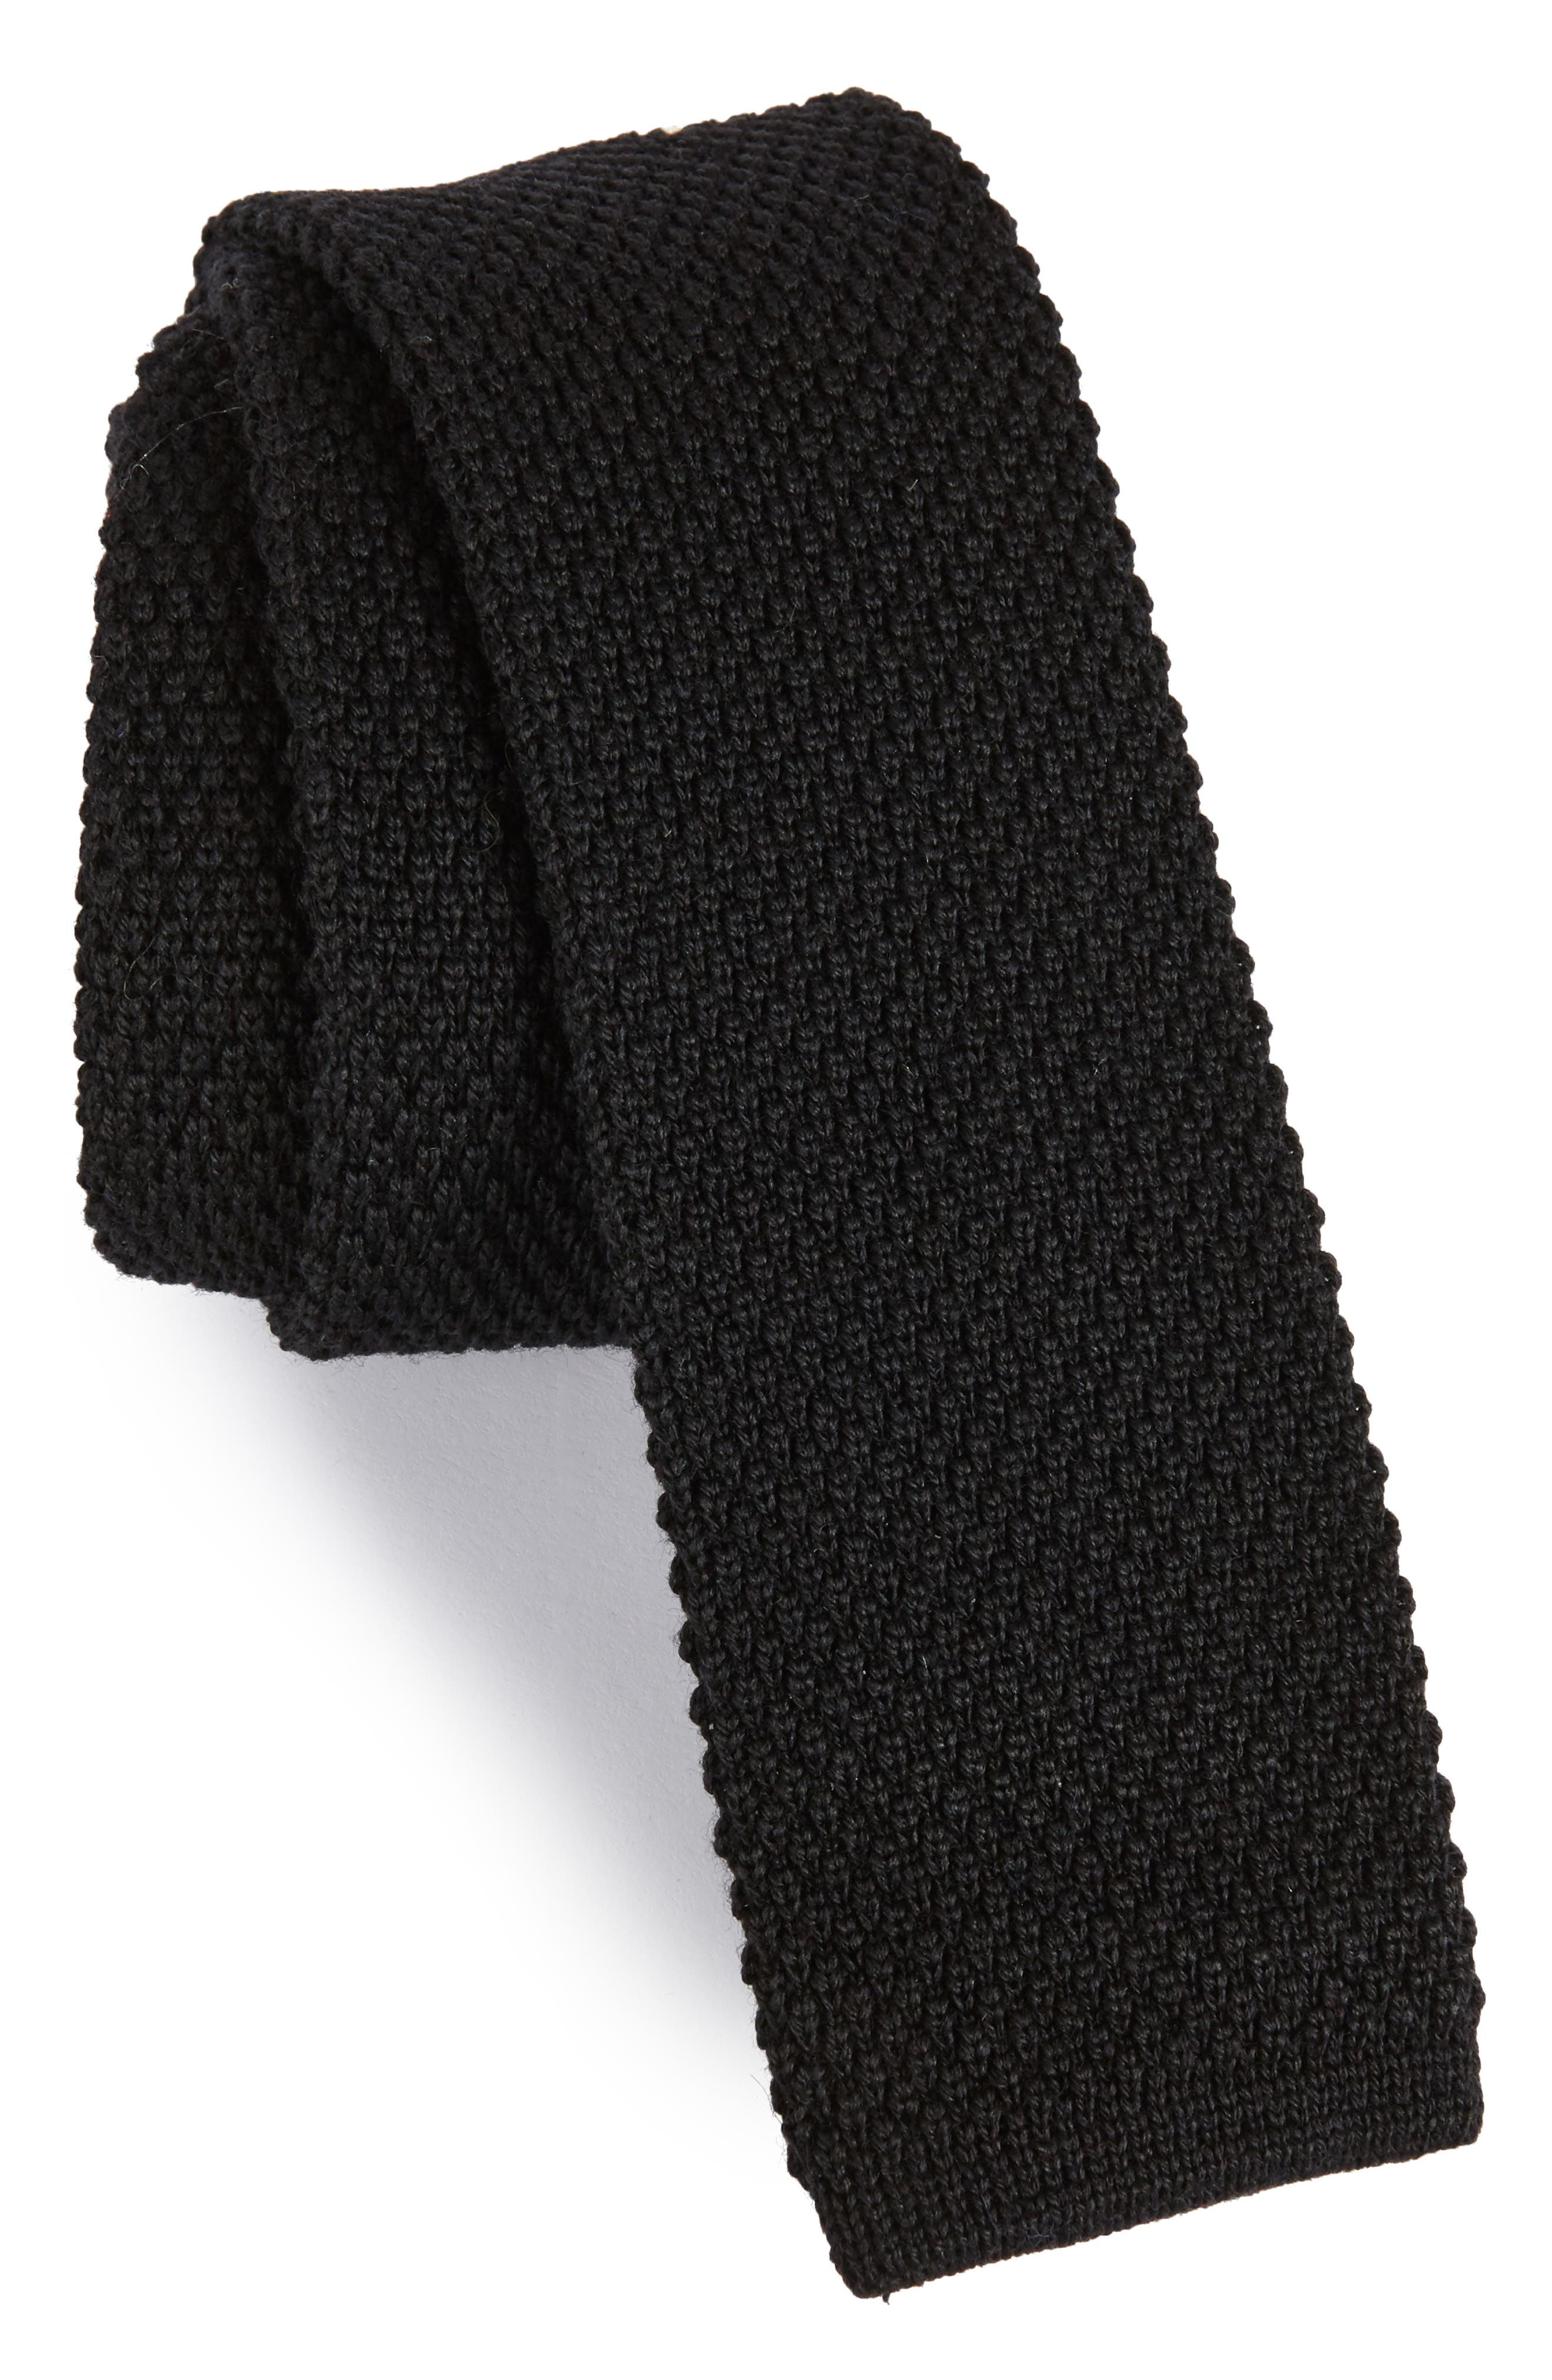 Solid Knit Wool Skinny Tie,                         Main,                         color, 001